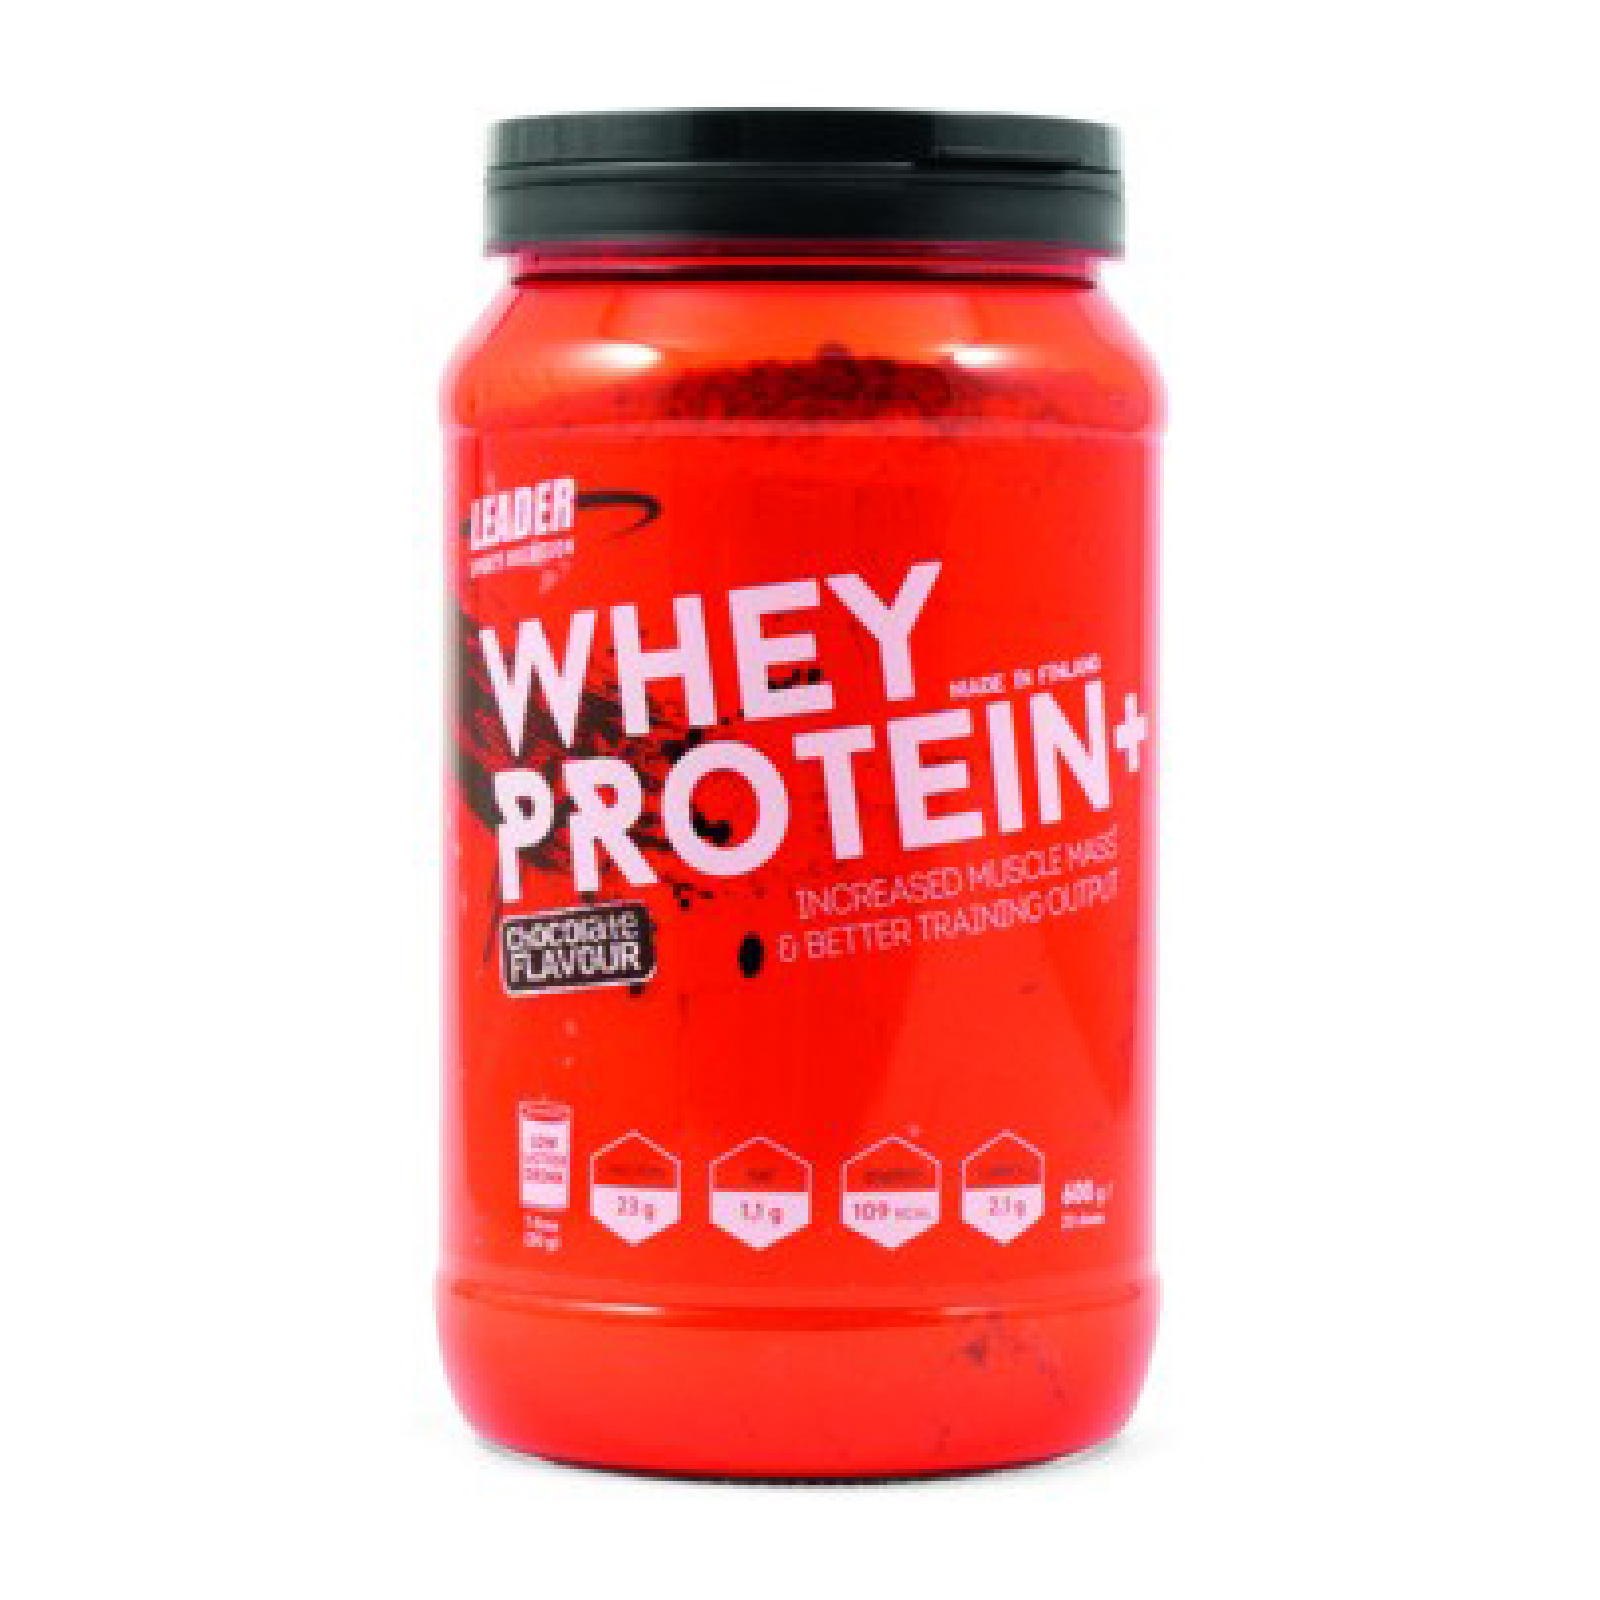 Leader Whey Protein, 600g - Natural